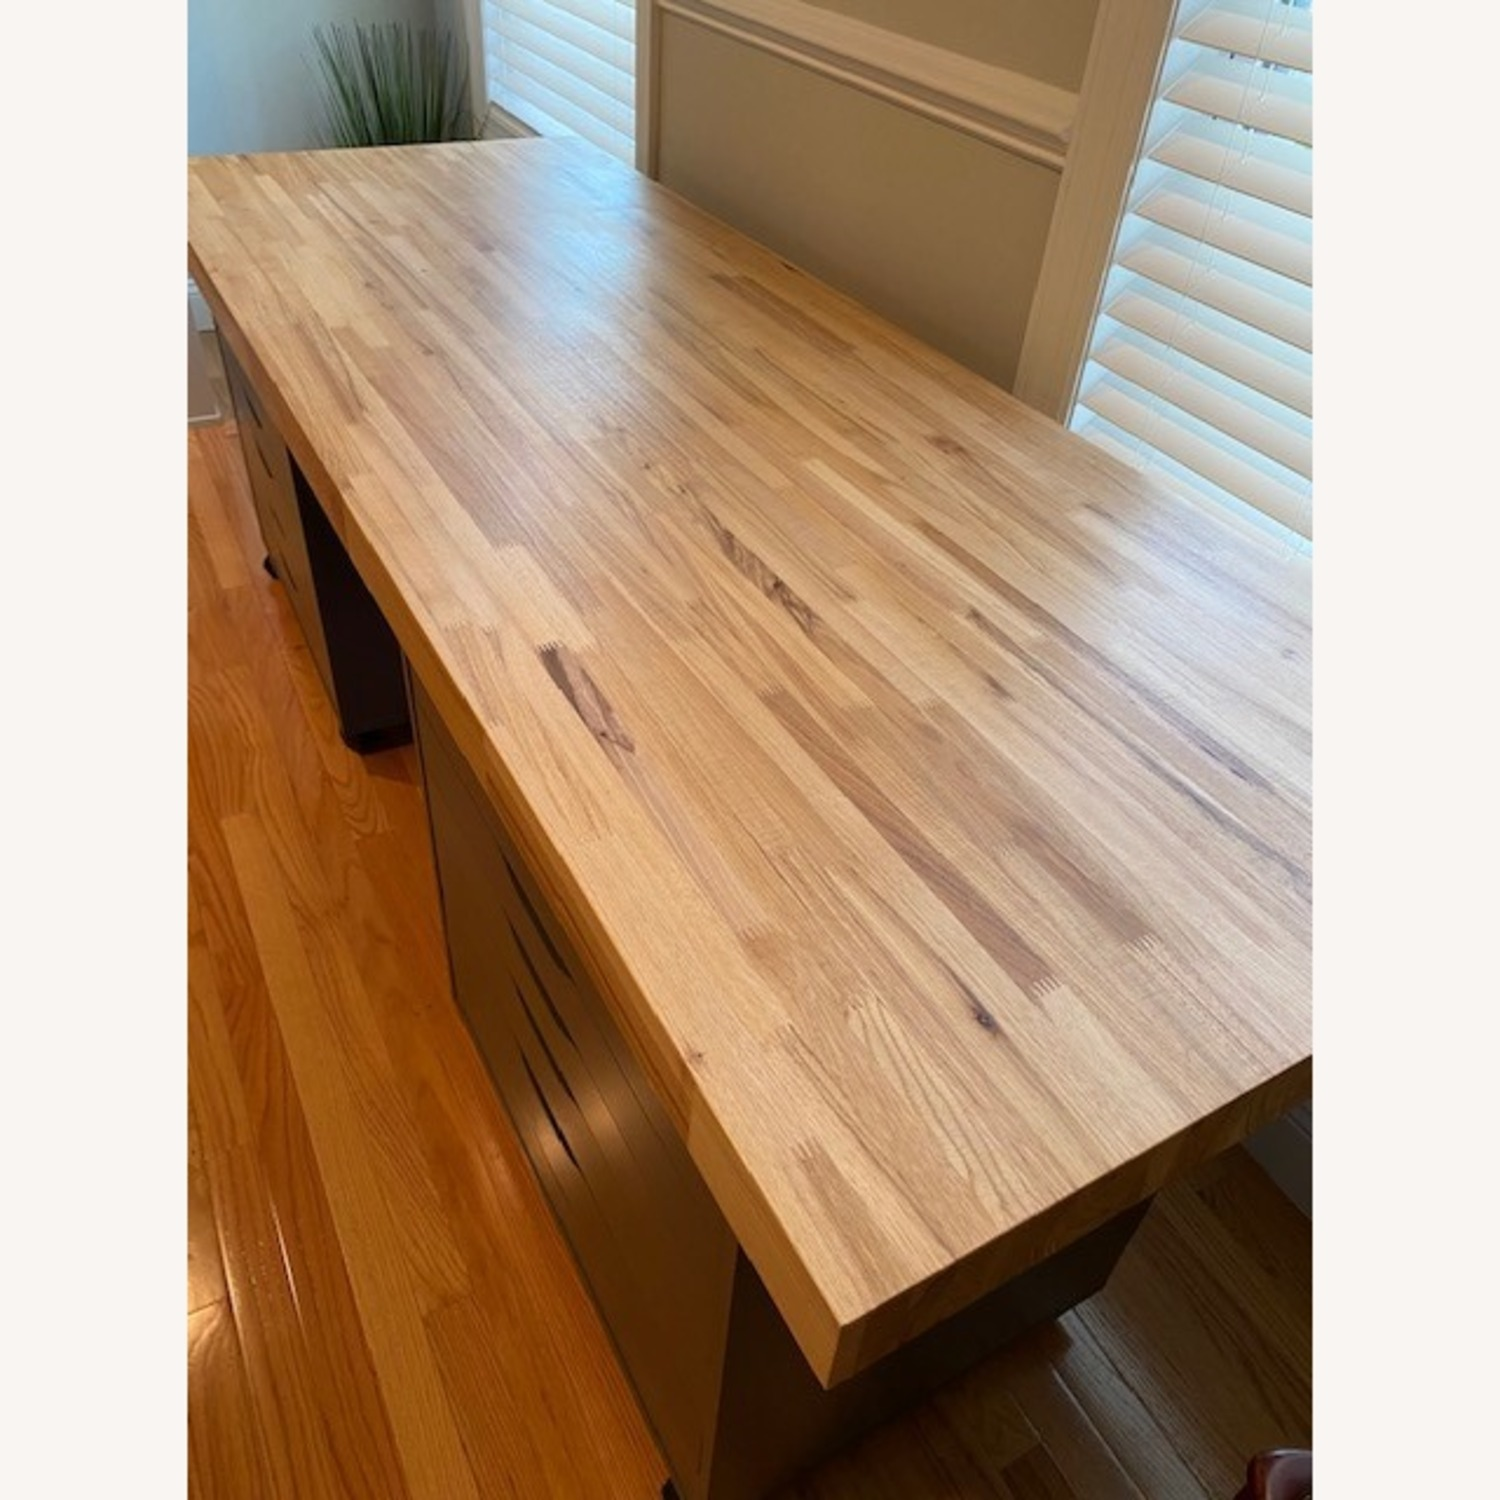 Butcher Block Countertop and Two Drawer Units - image-1